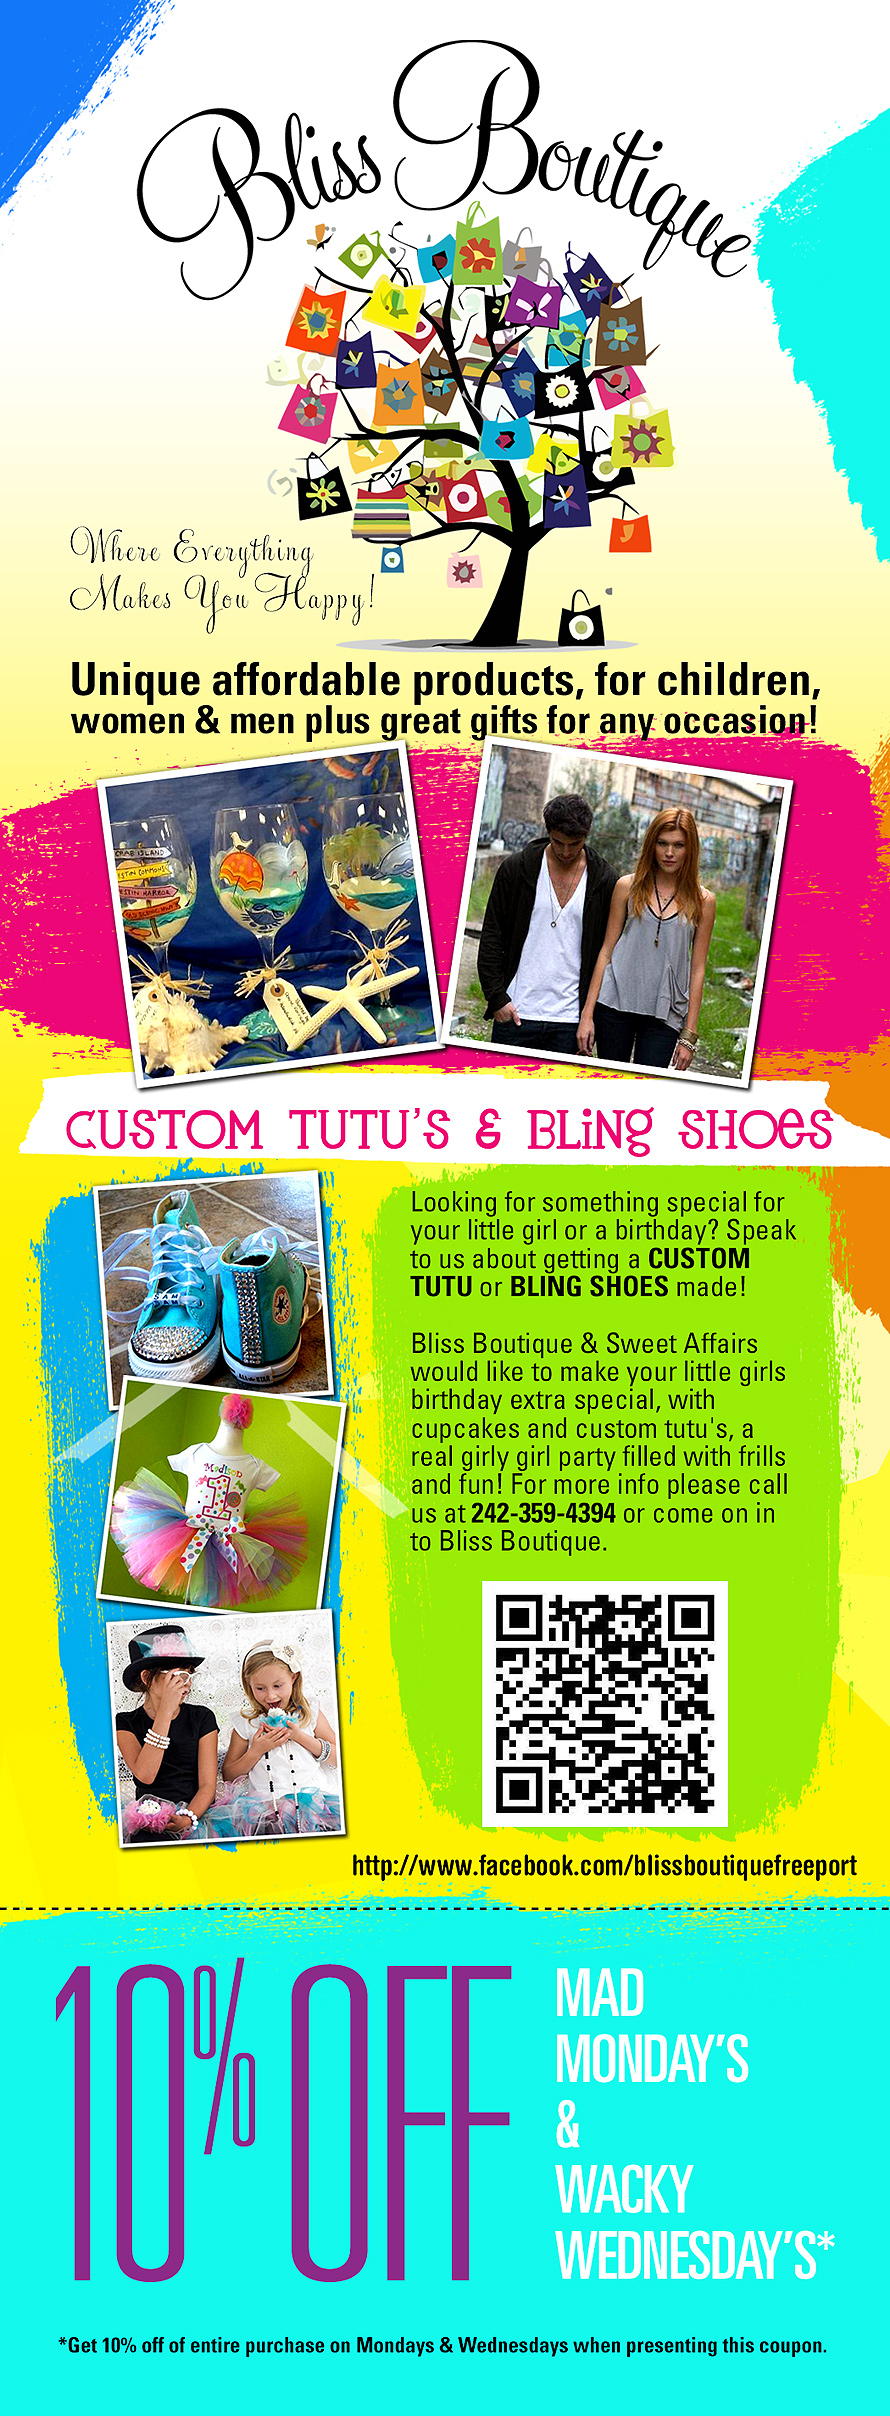 Bliss Boutique Gifts